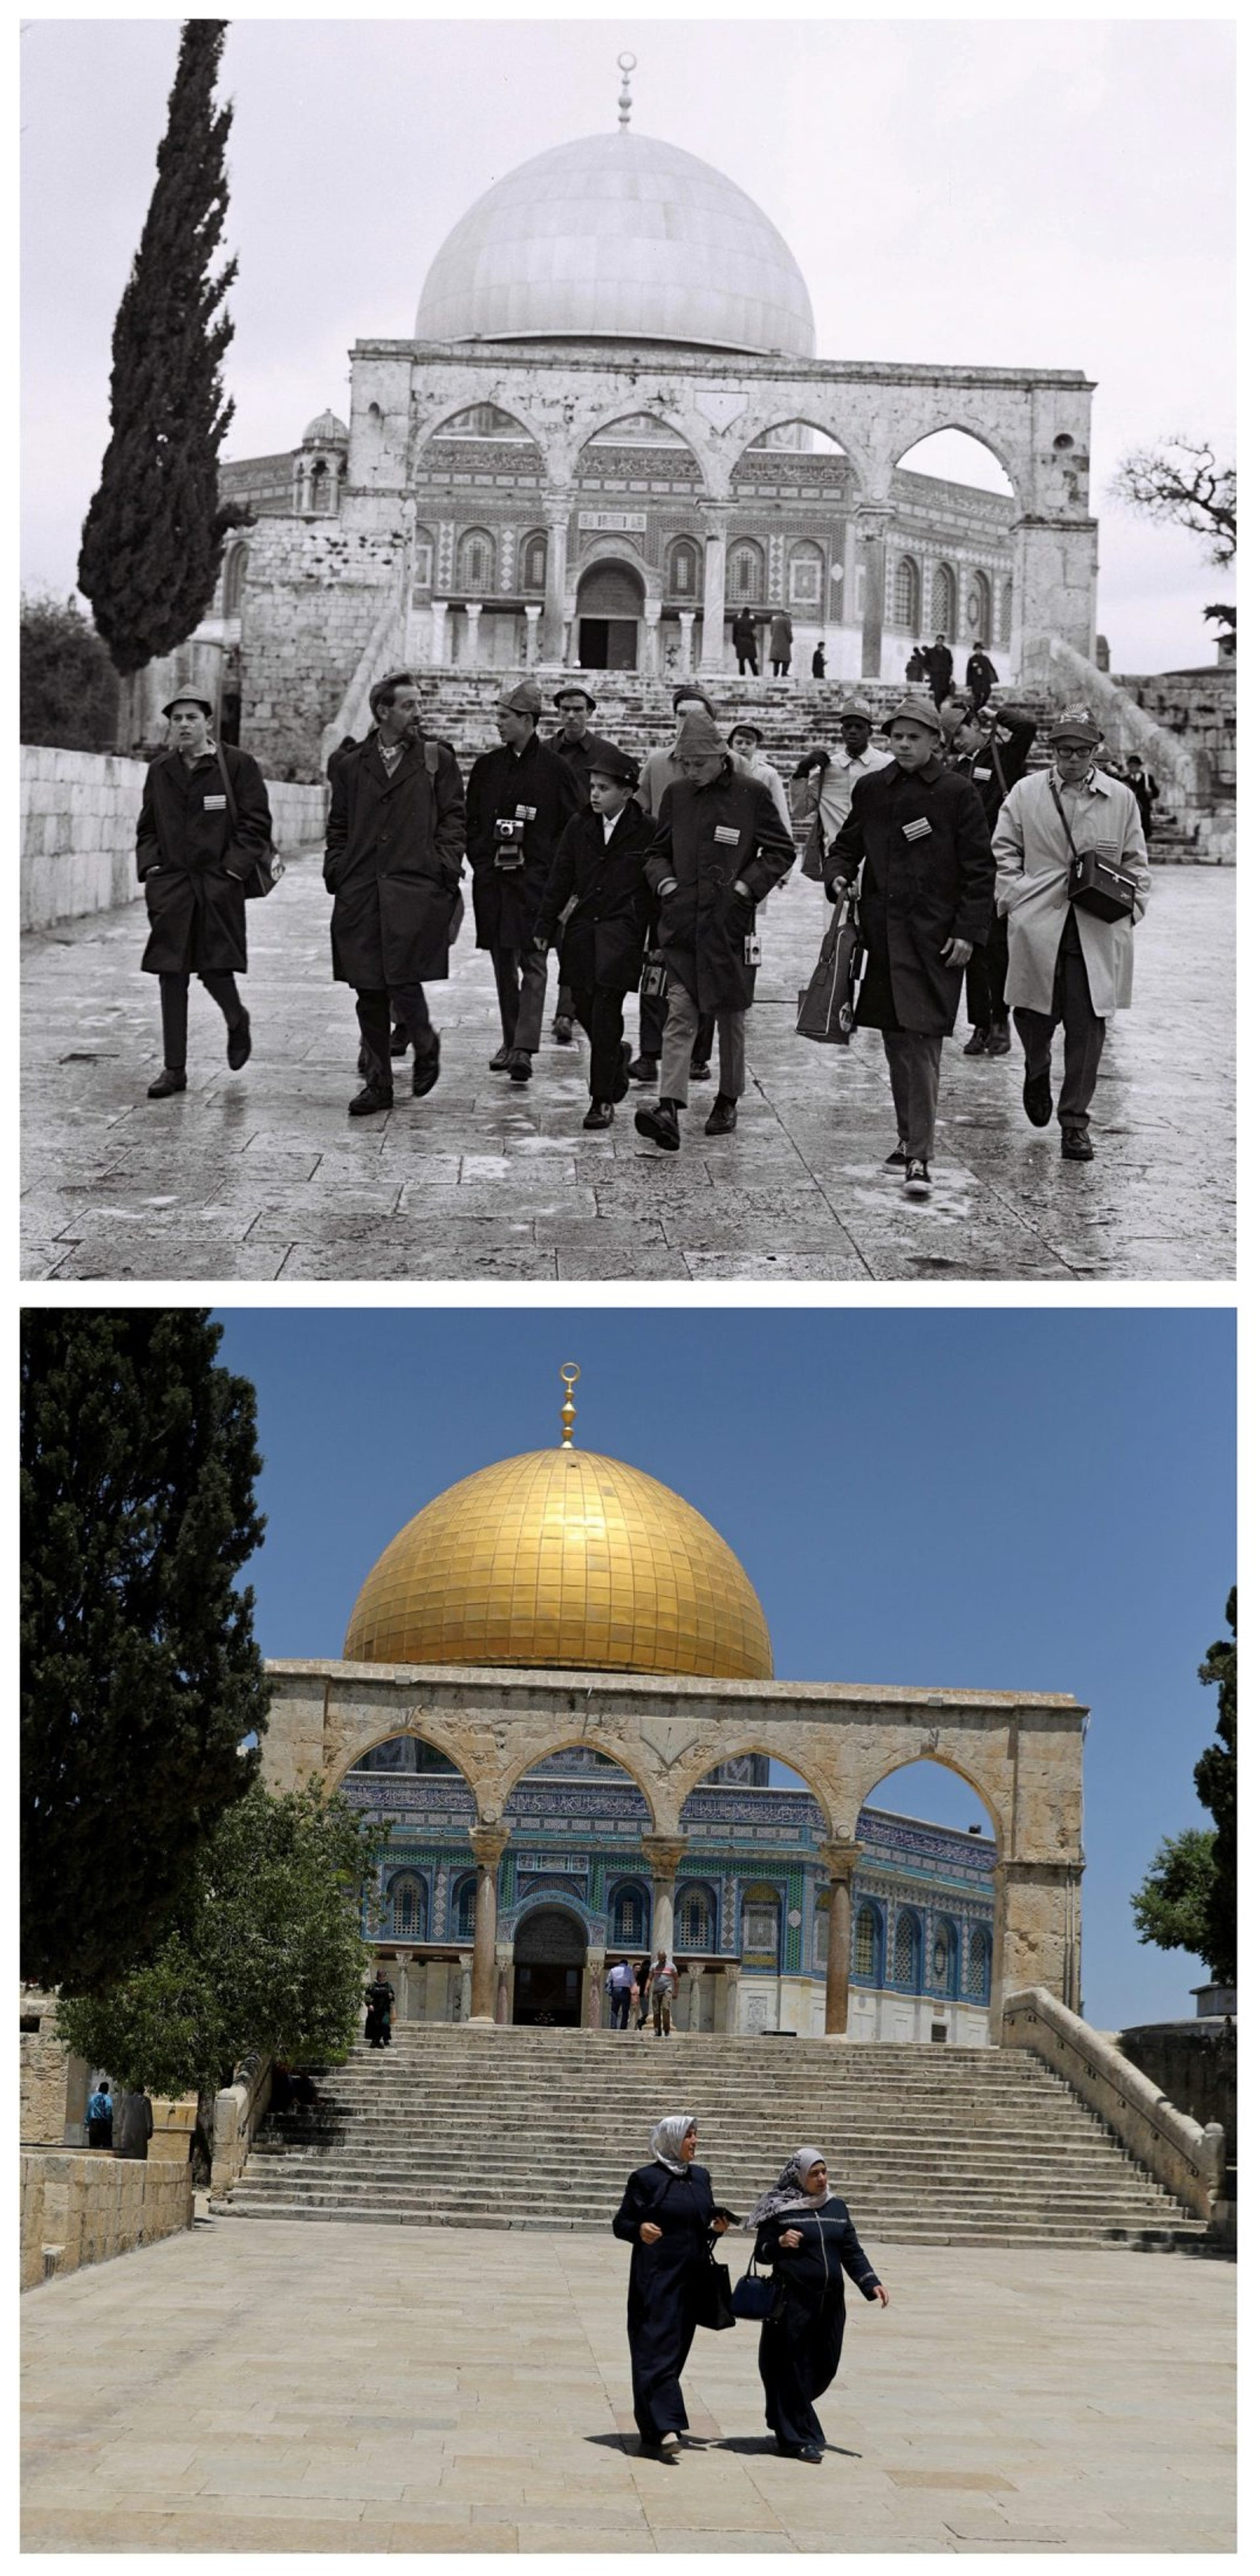 "A combination picture shows the Hearst Junior Diplomats walking in front of the Dome of the Rock on the compound known to Muslims as Noble Sanctuary and to Jews as Temple Mount, in Jerusalem's Old City, in this Government Press Office handout photo, taken December 24, 1967 (top) and Palestinians walking in the same location May 17, 2017. REUTERS/Moshe Milner/Government Press Office/Handout via Reuters (top)/Ammar Awad THIS PICTURE WAS PROVIDED BY A THIRD PARTY. REUTERS IS UNABLE TO INDEPENDENTLY VERIFY THE AUTHENTICITY, CONTENT, LOCATION OR DATE OF THIS IMAGE. FOR EDITORIAL USE ONLY. NOT FOR SALE FOR MARKETING OR ADVERTISING CAMPAIGNS. SEARCH ""1967 WAR"" FOR THIS STORY. SEARCH ""WIDER IMAGE"" FOR ALL STORIES."